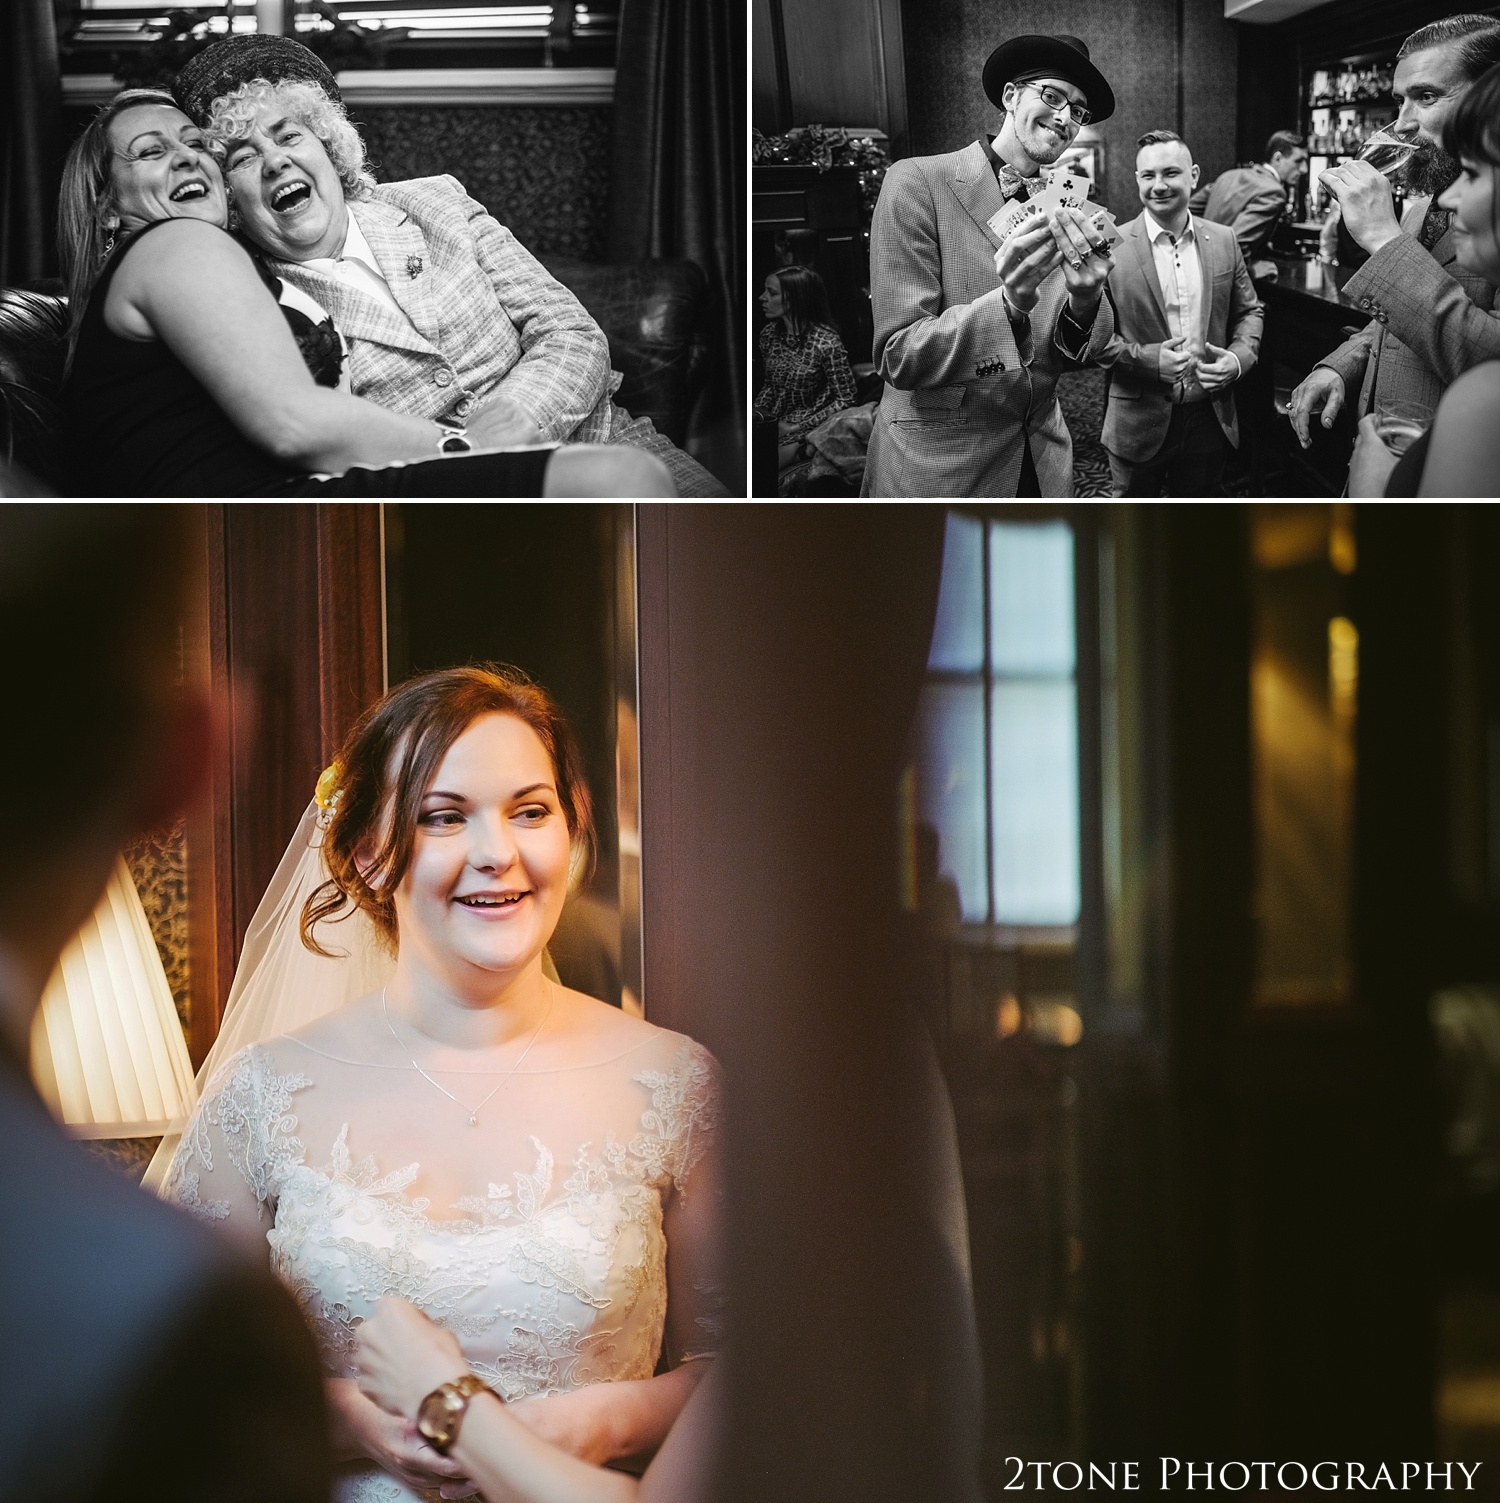 Documentary wedding photography at the Vermont Hotel by wedding photographers 2tone Photography www.2tonephotography.co.uk